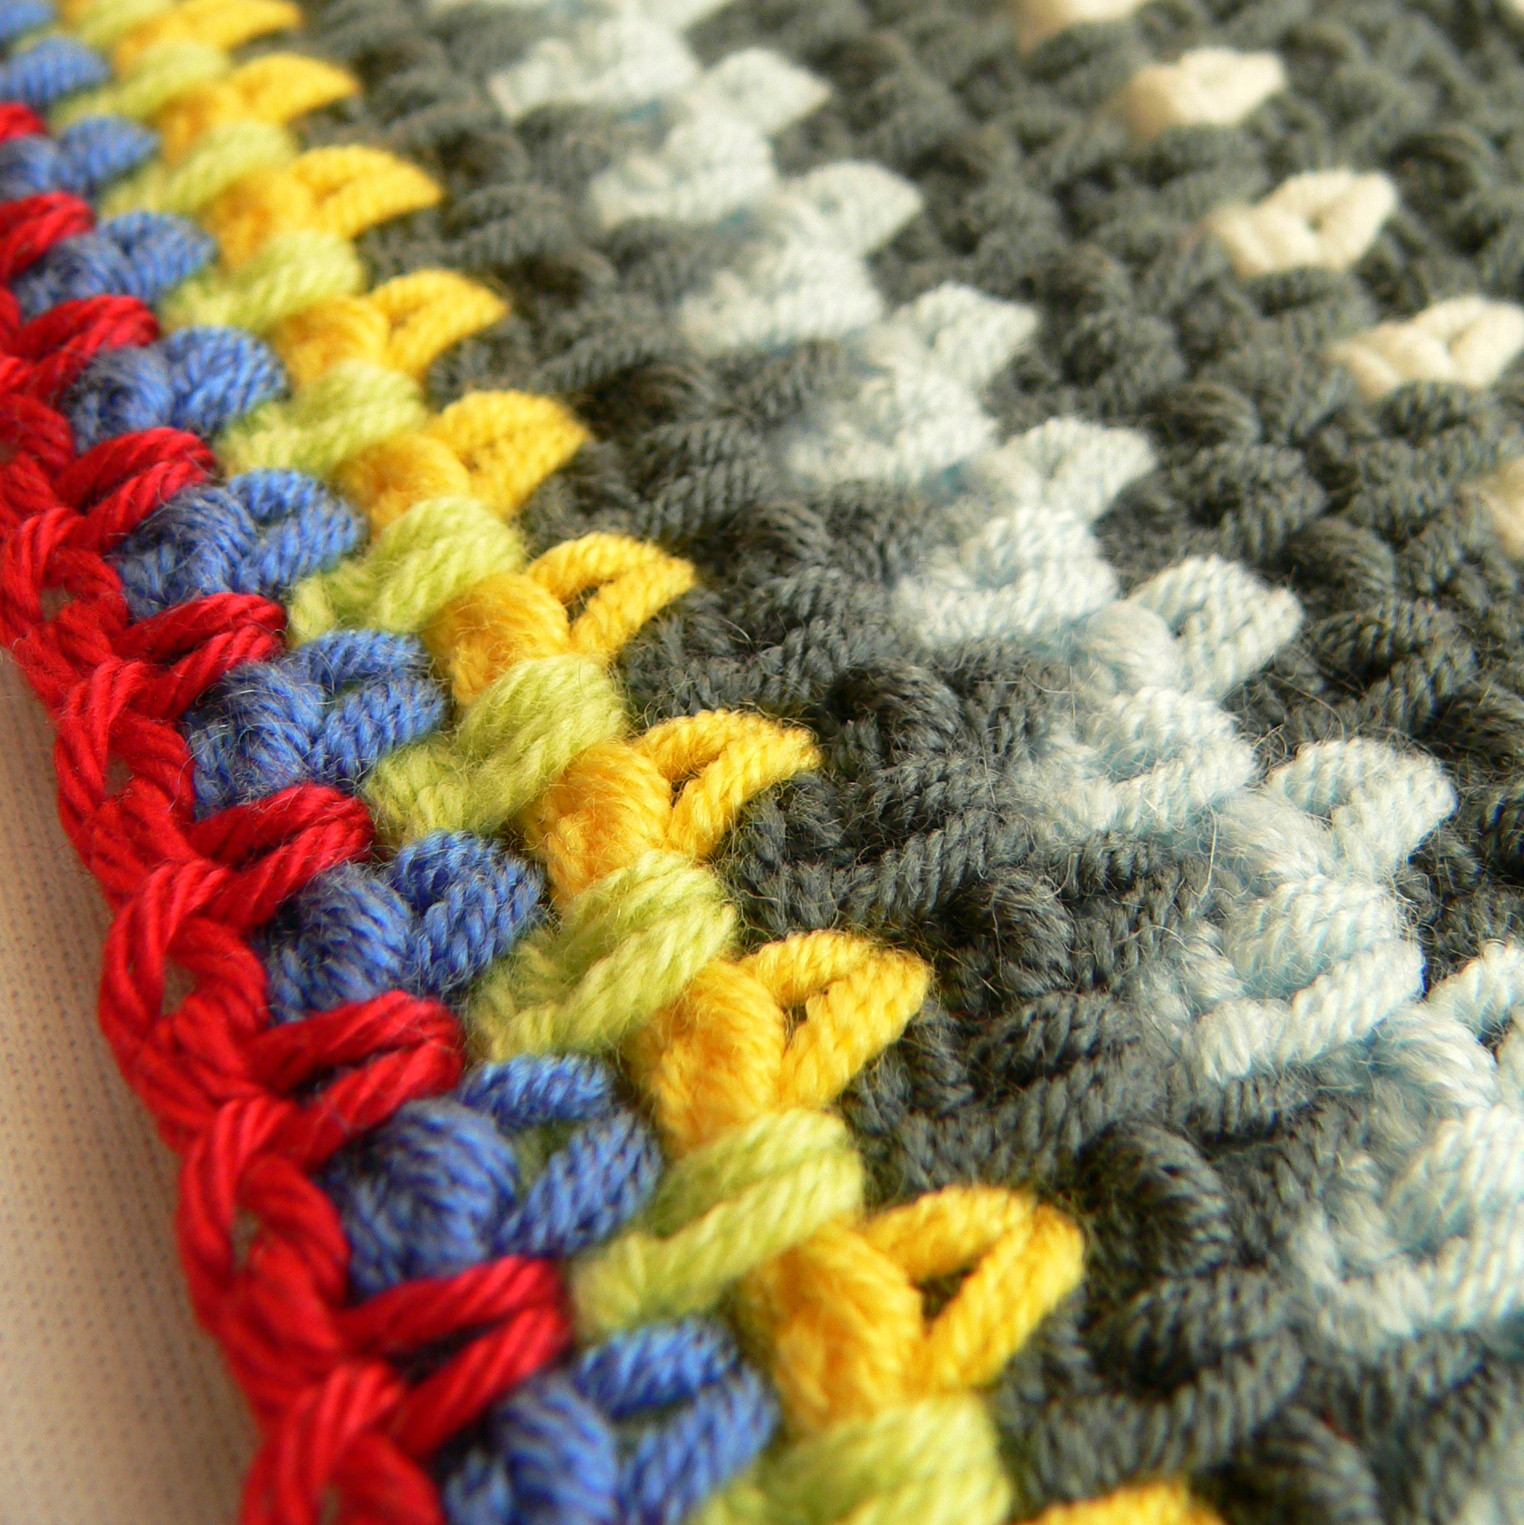 New 16 Different Crochet Stitches to Try List Of Crochet Stitches Of Amazing 49 Pics List Of Crochet Stitches